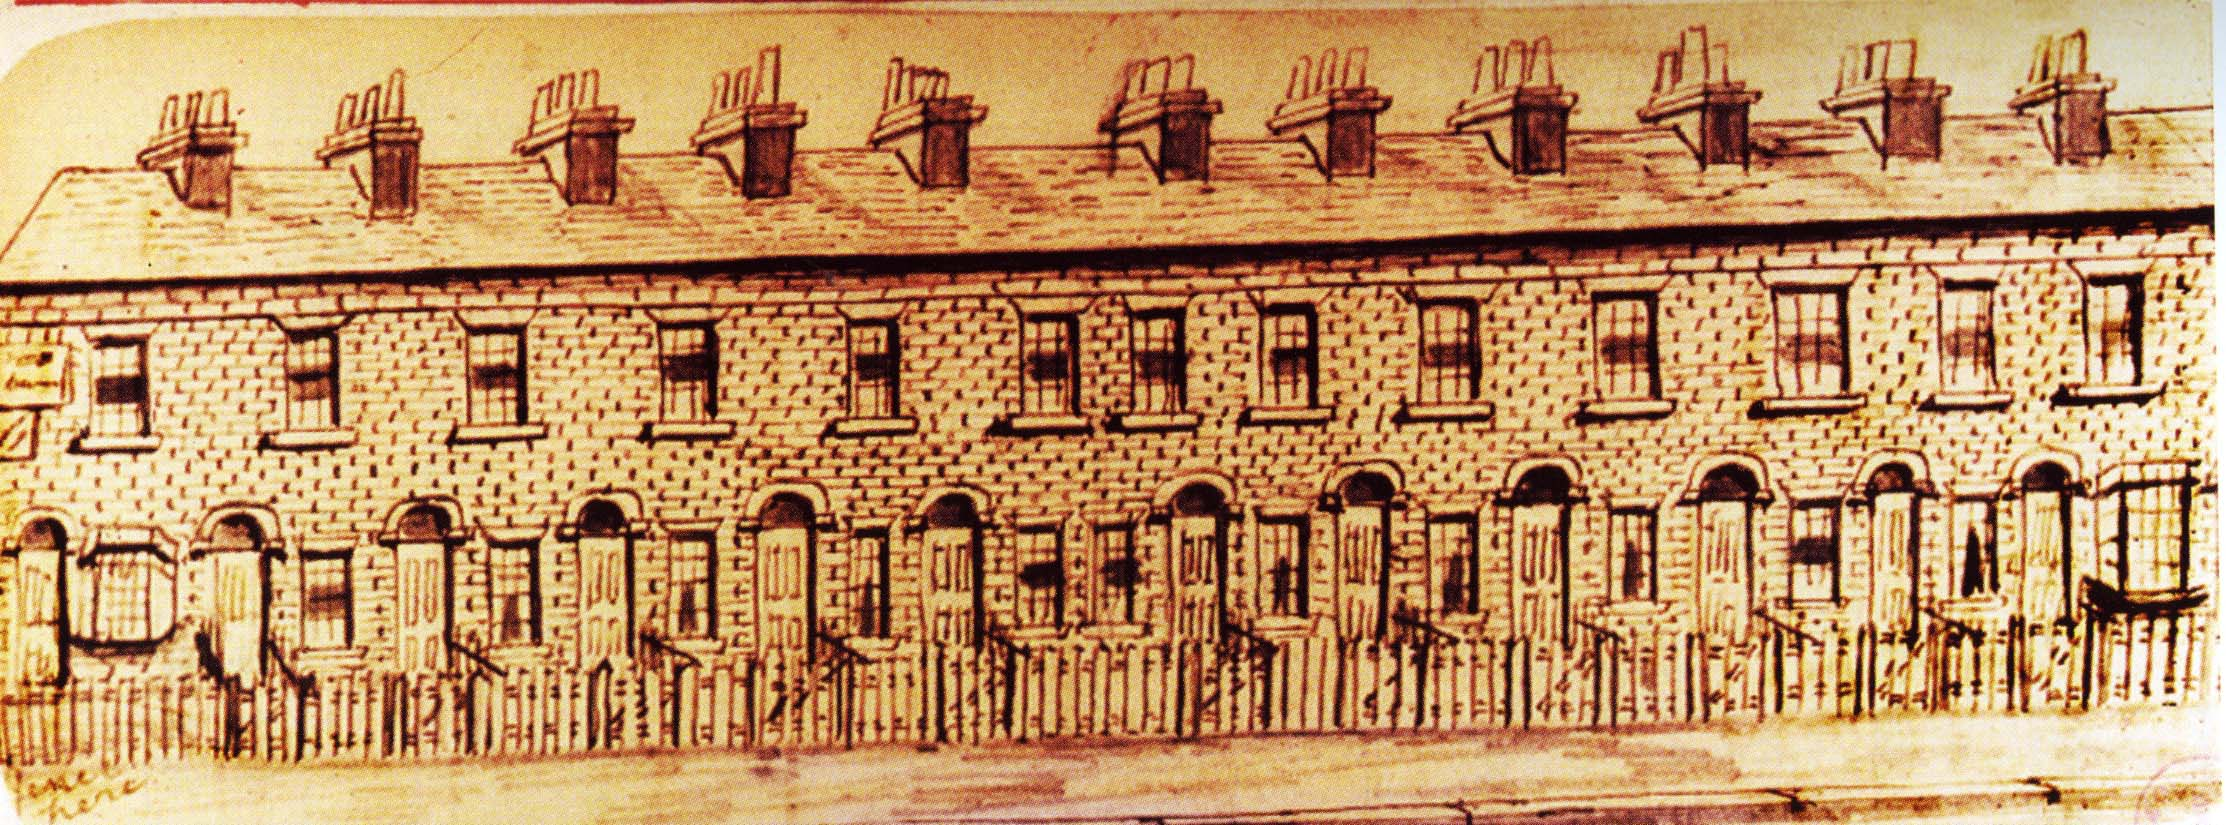 Illustration of Dangerfield Cottages by Frogley